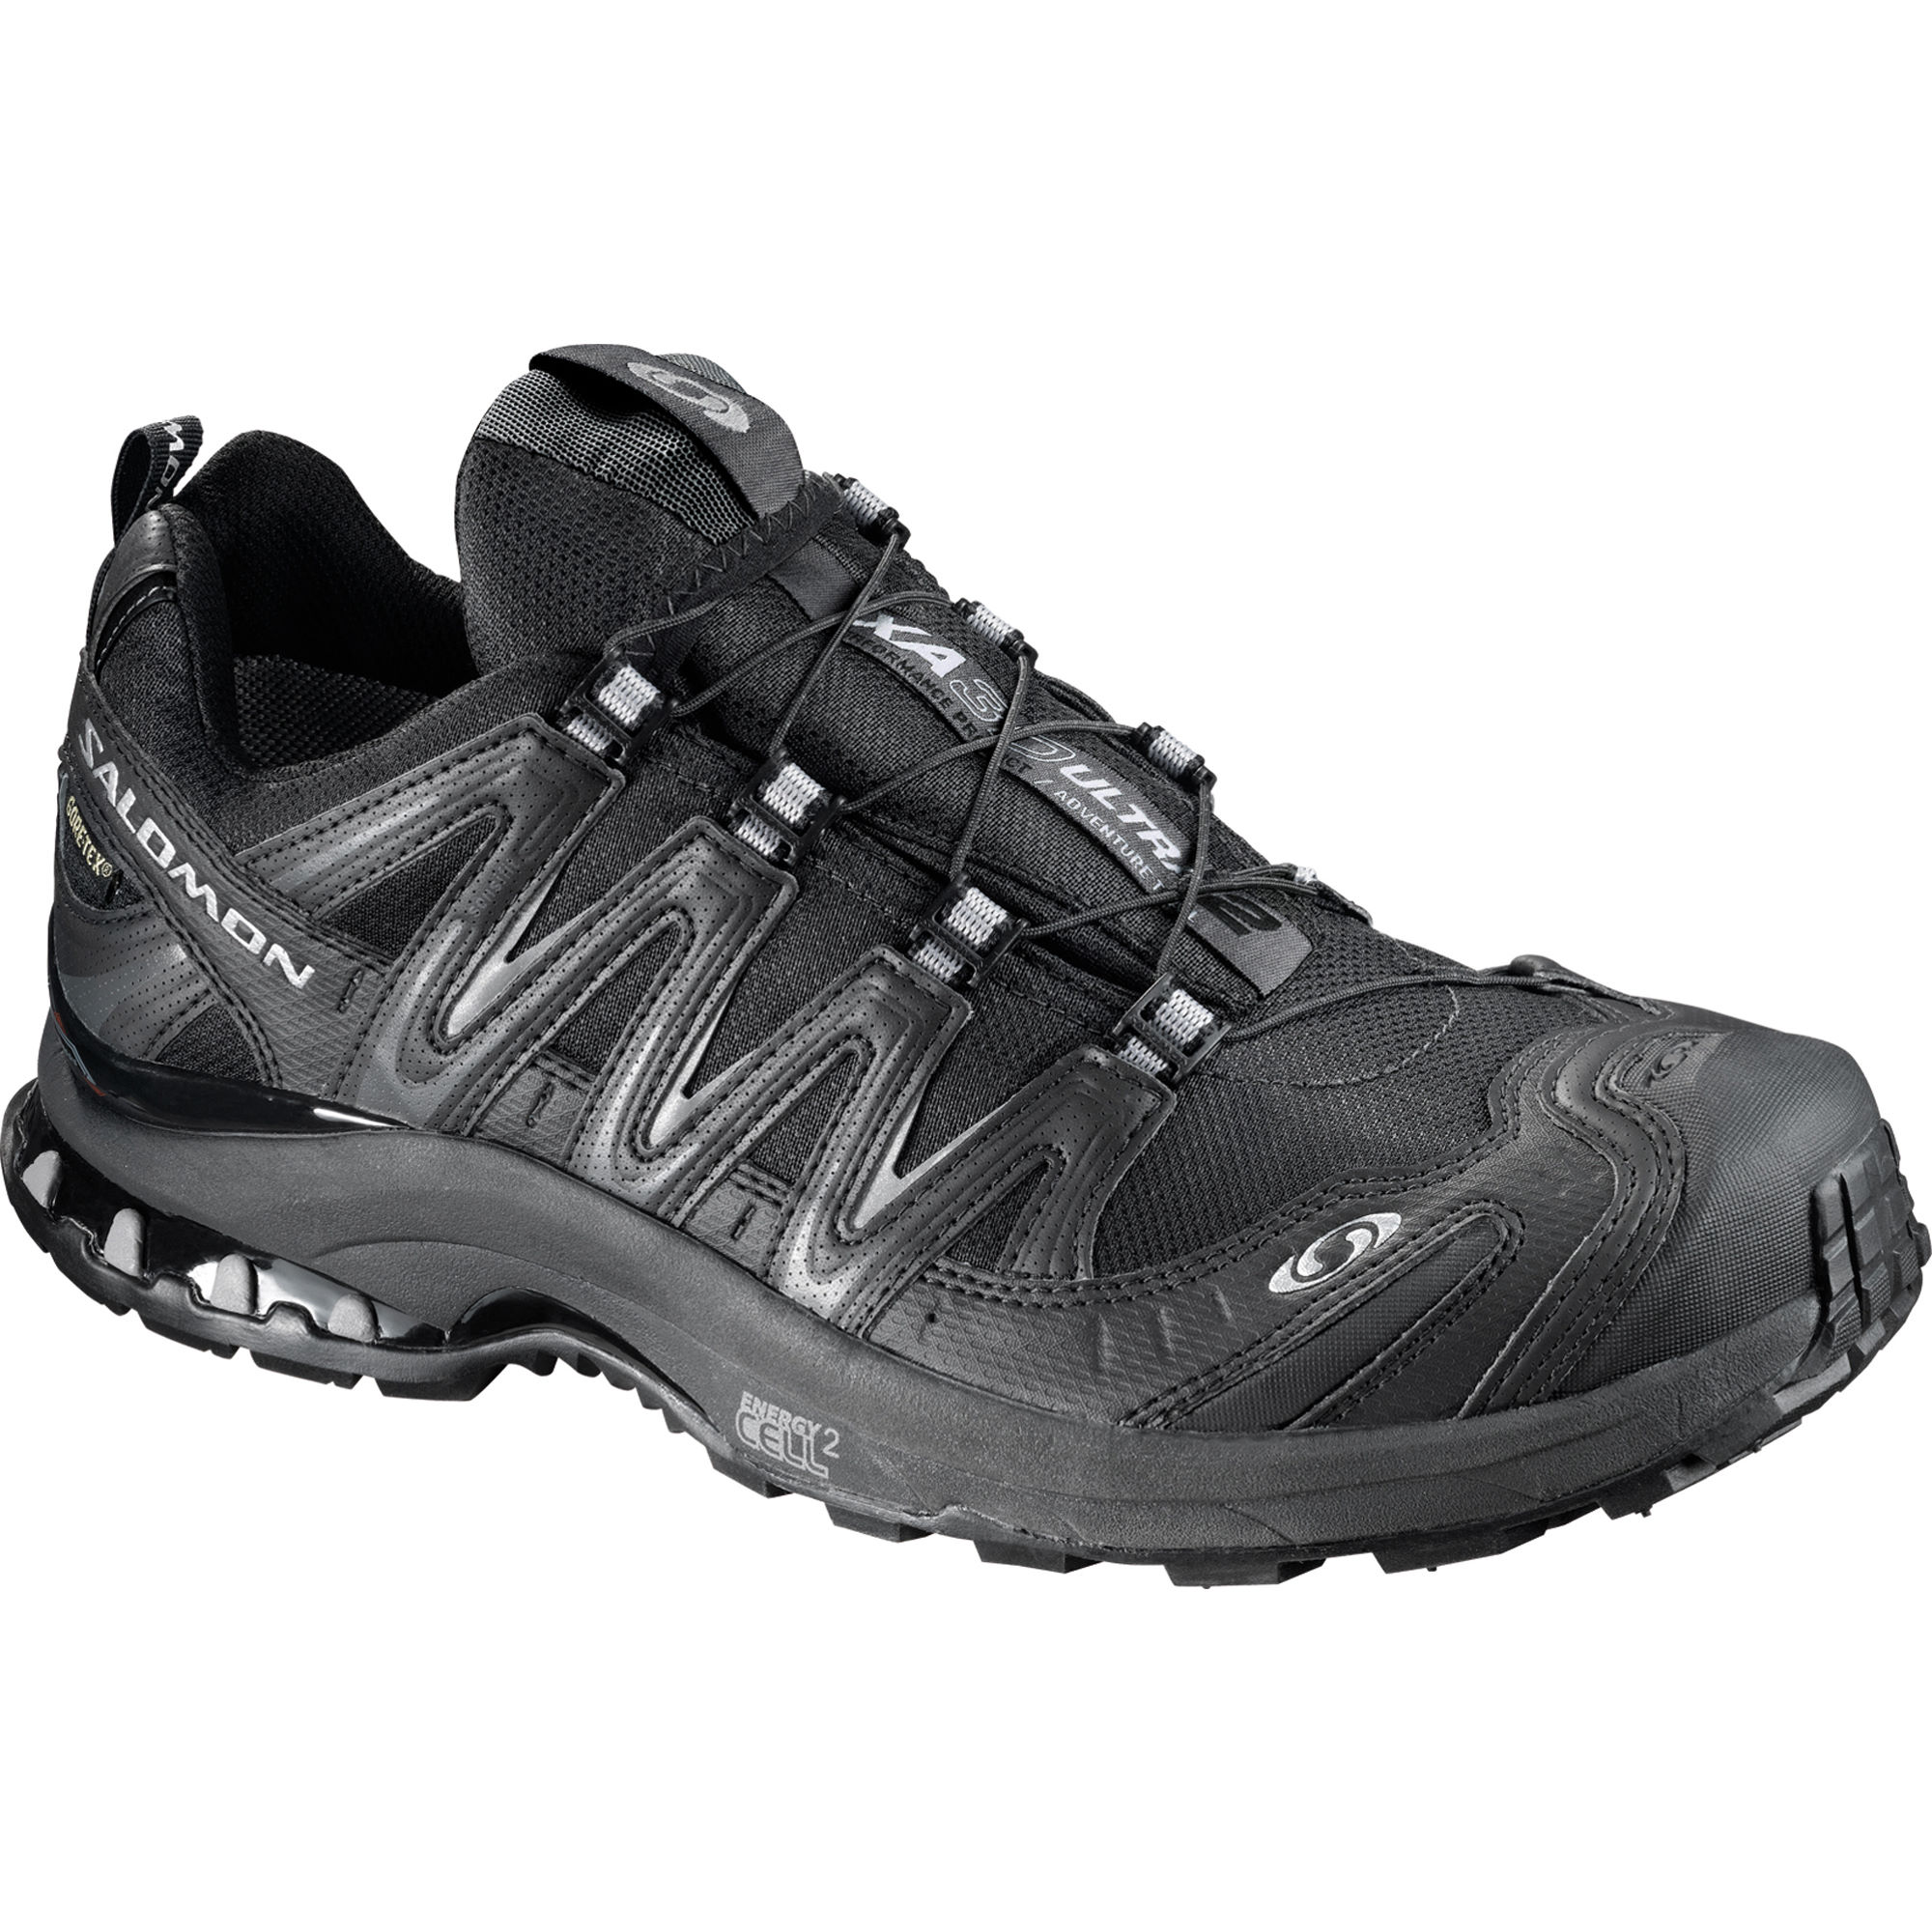 wiggle salomon xa pro 3d ultra 2 gtx shoes ss14 offroad running shoes. Black Bedroom Furniture Sets. Home Design Ideas